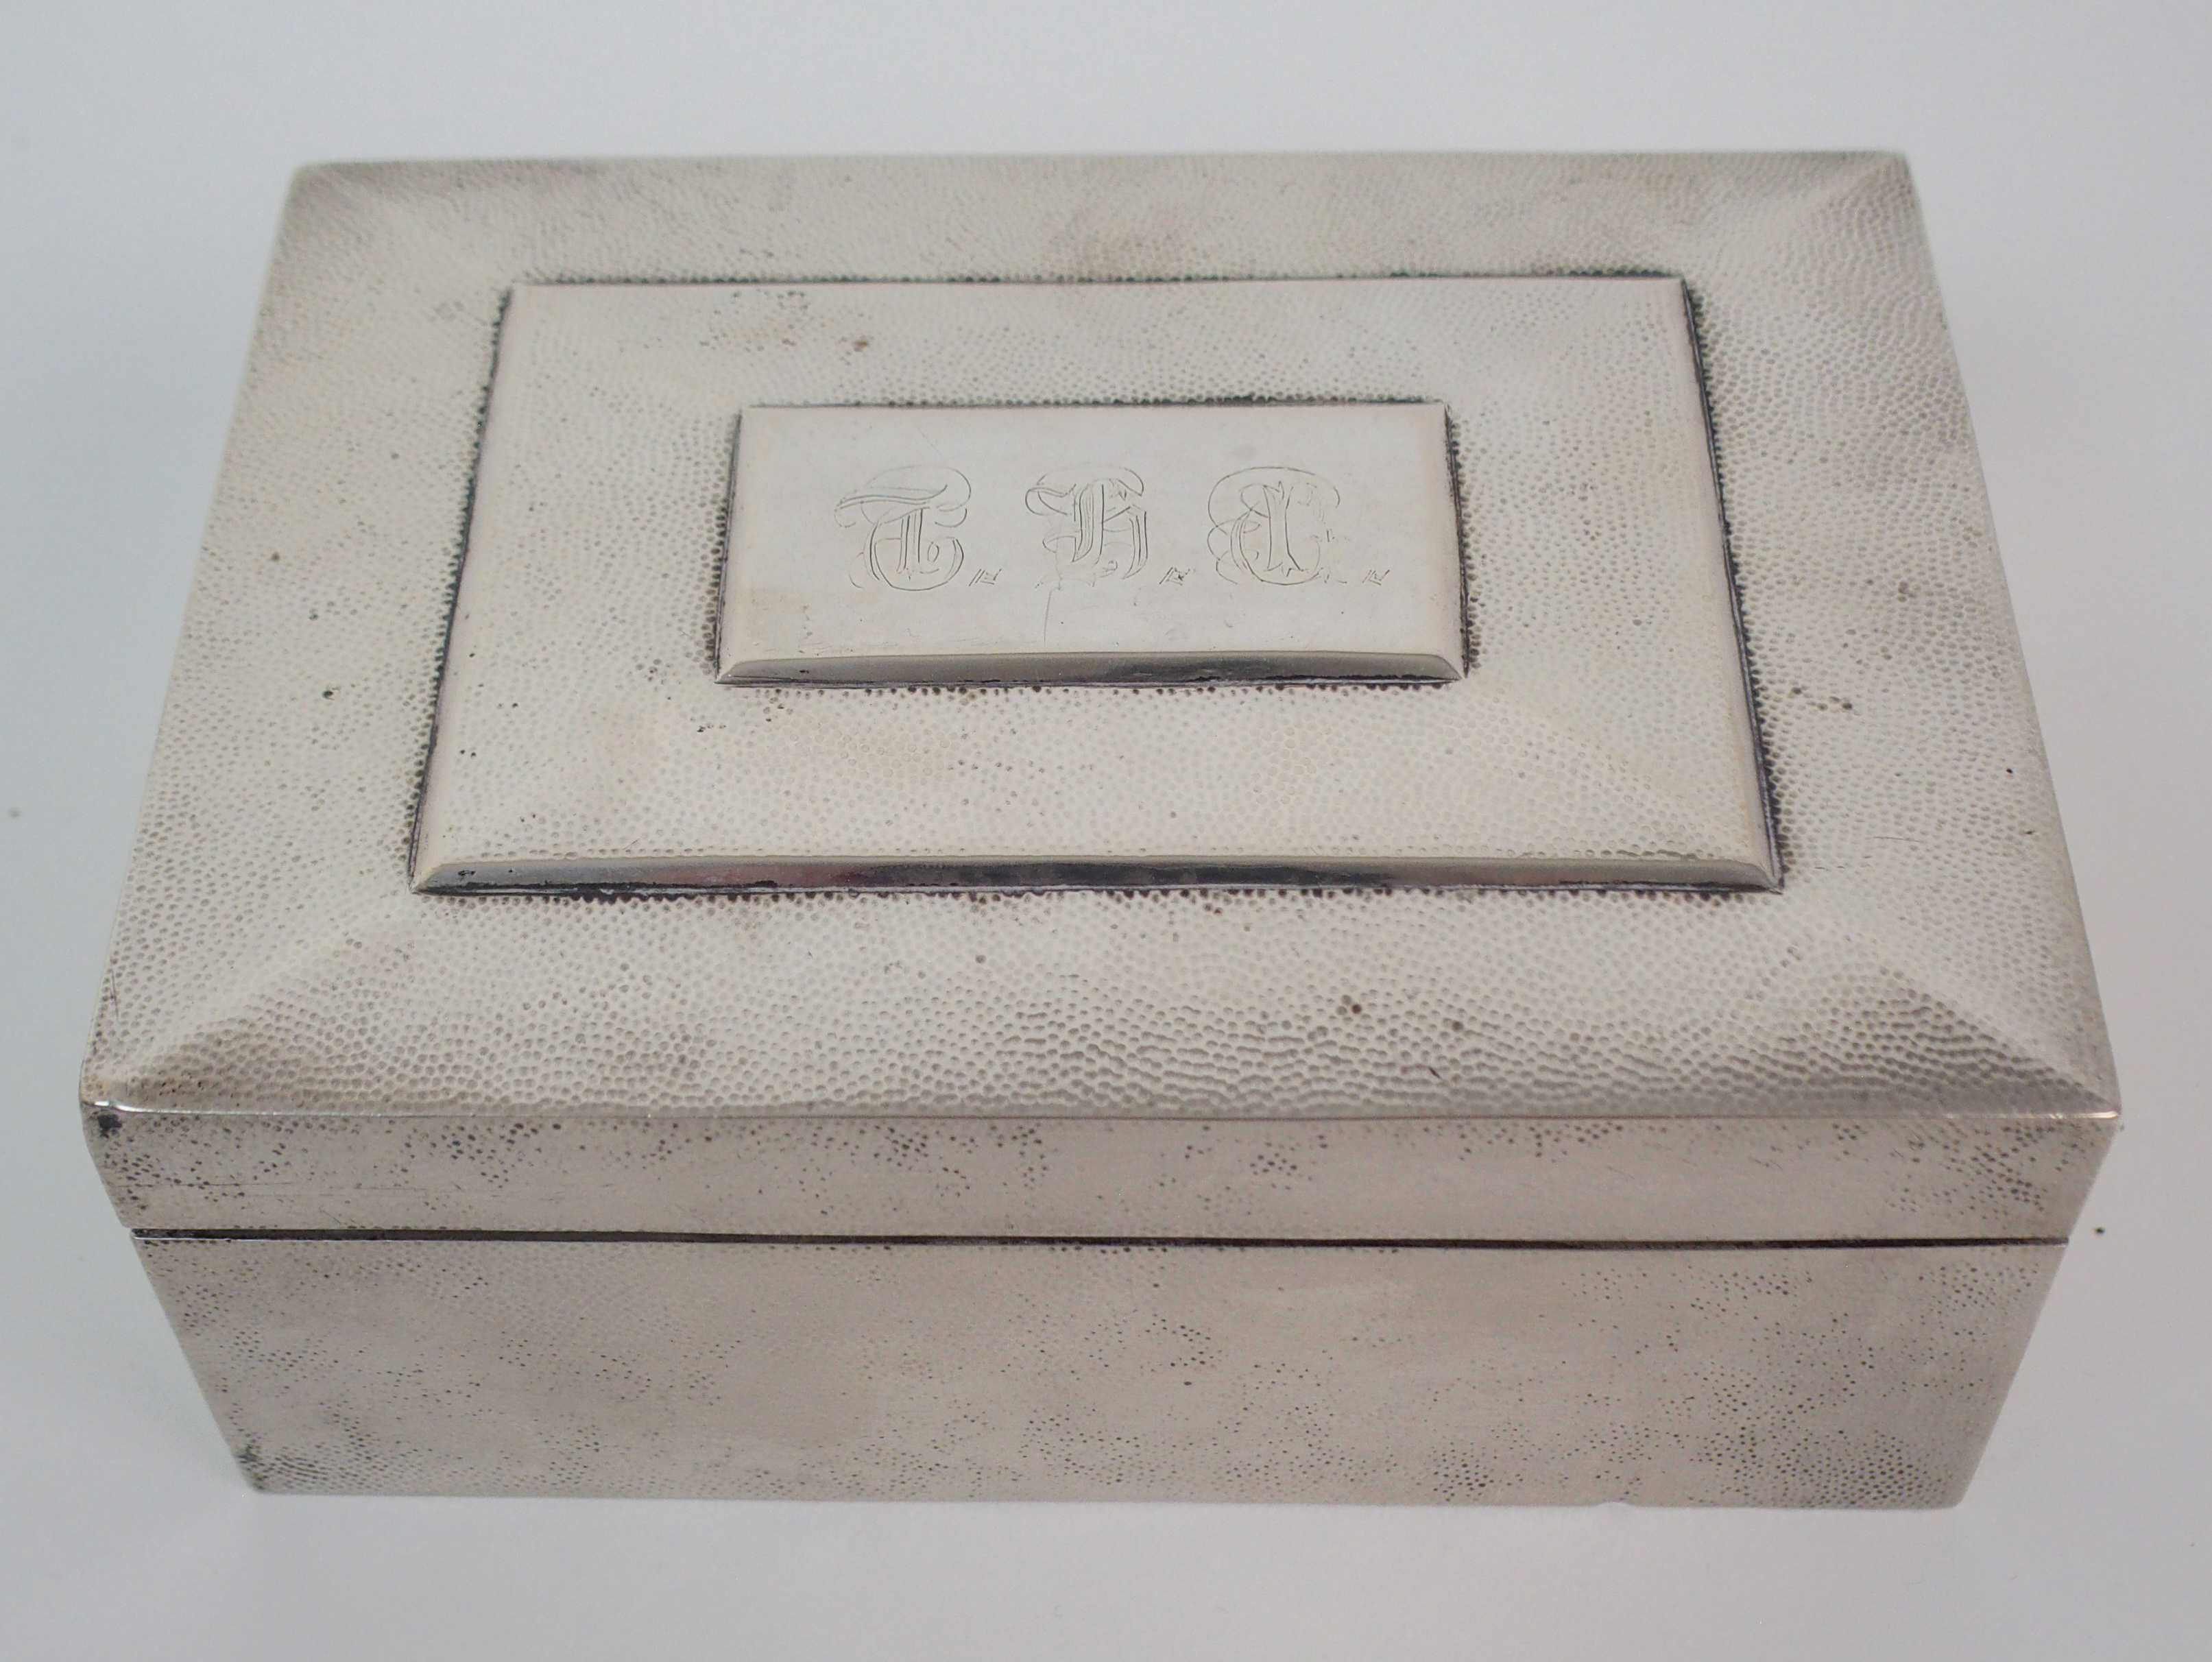 Lot 33 - A CHINESE SILVER CIGARETTE BOX the hinged cover with engraved monogram stamped CW (lined), 380 grams